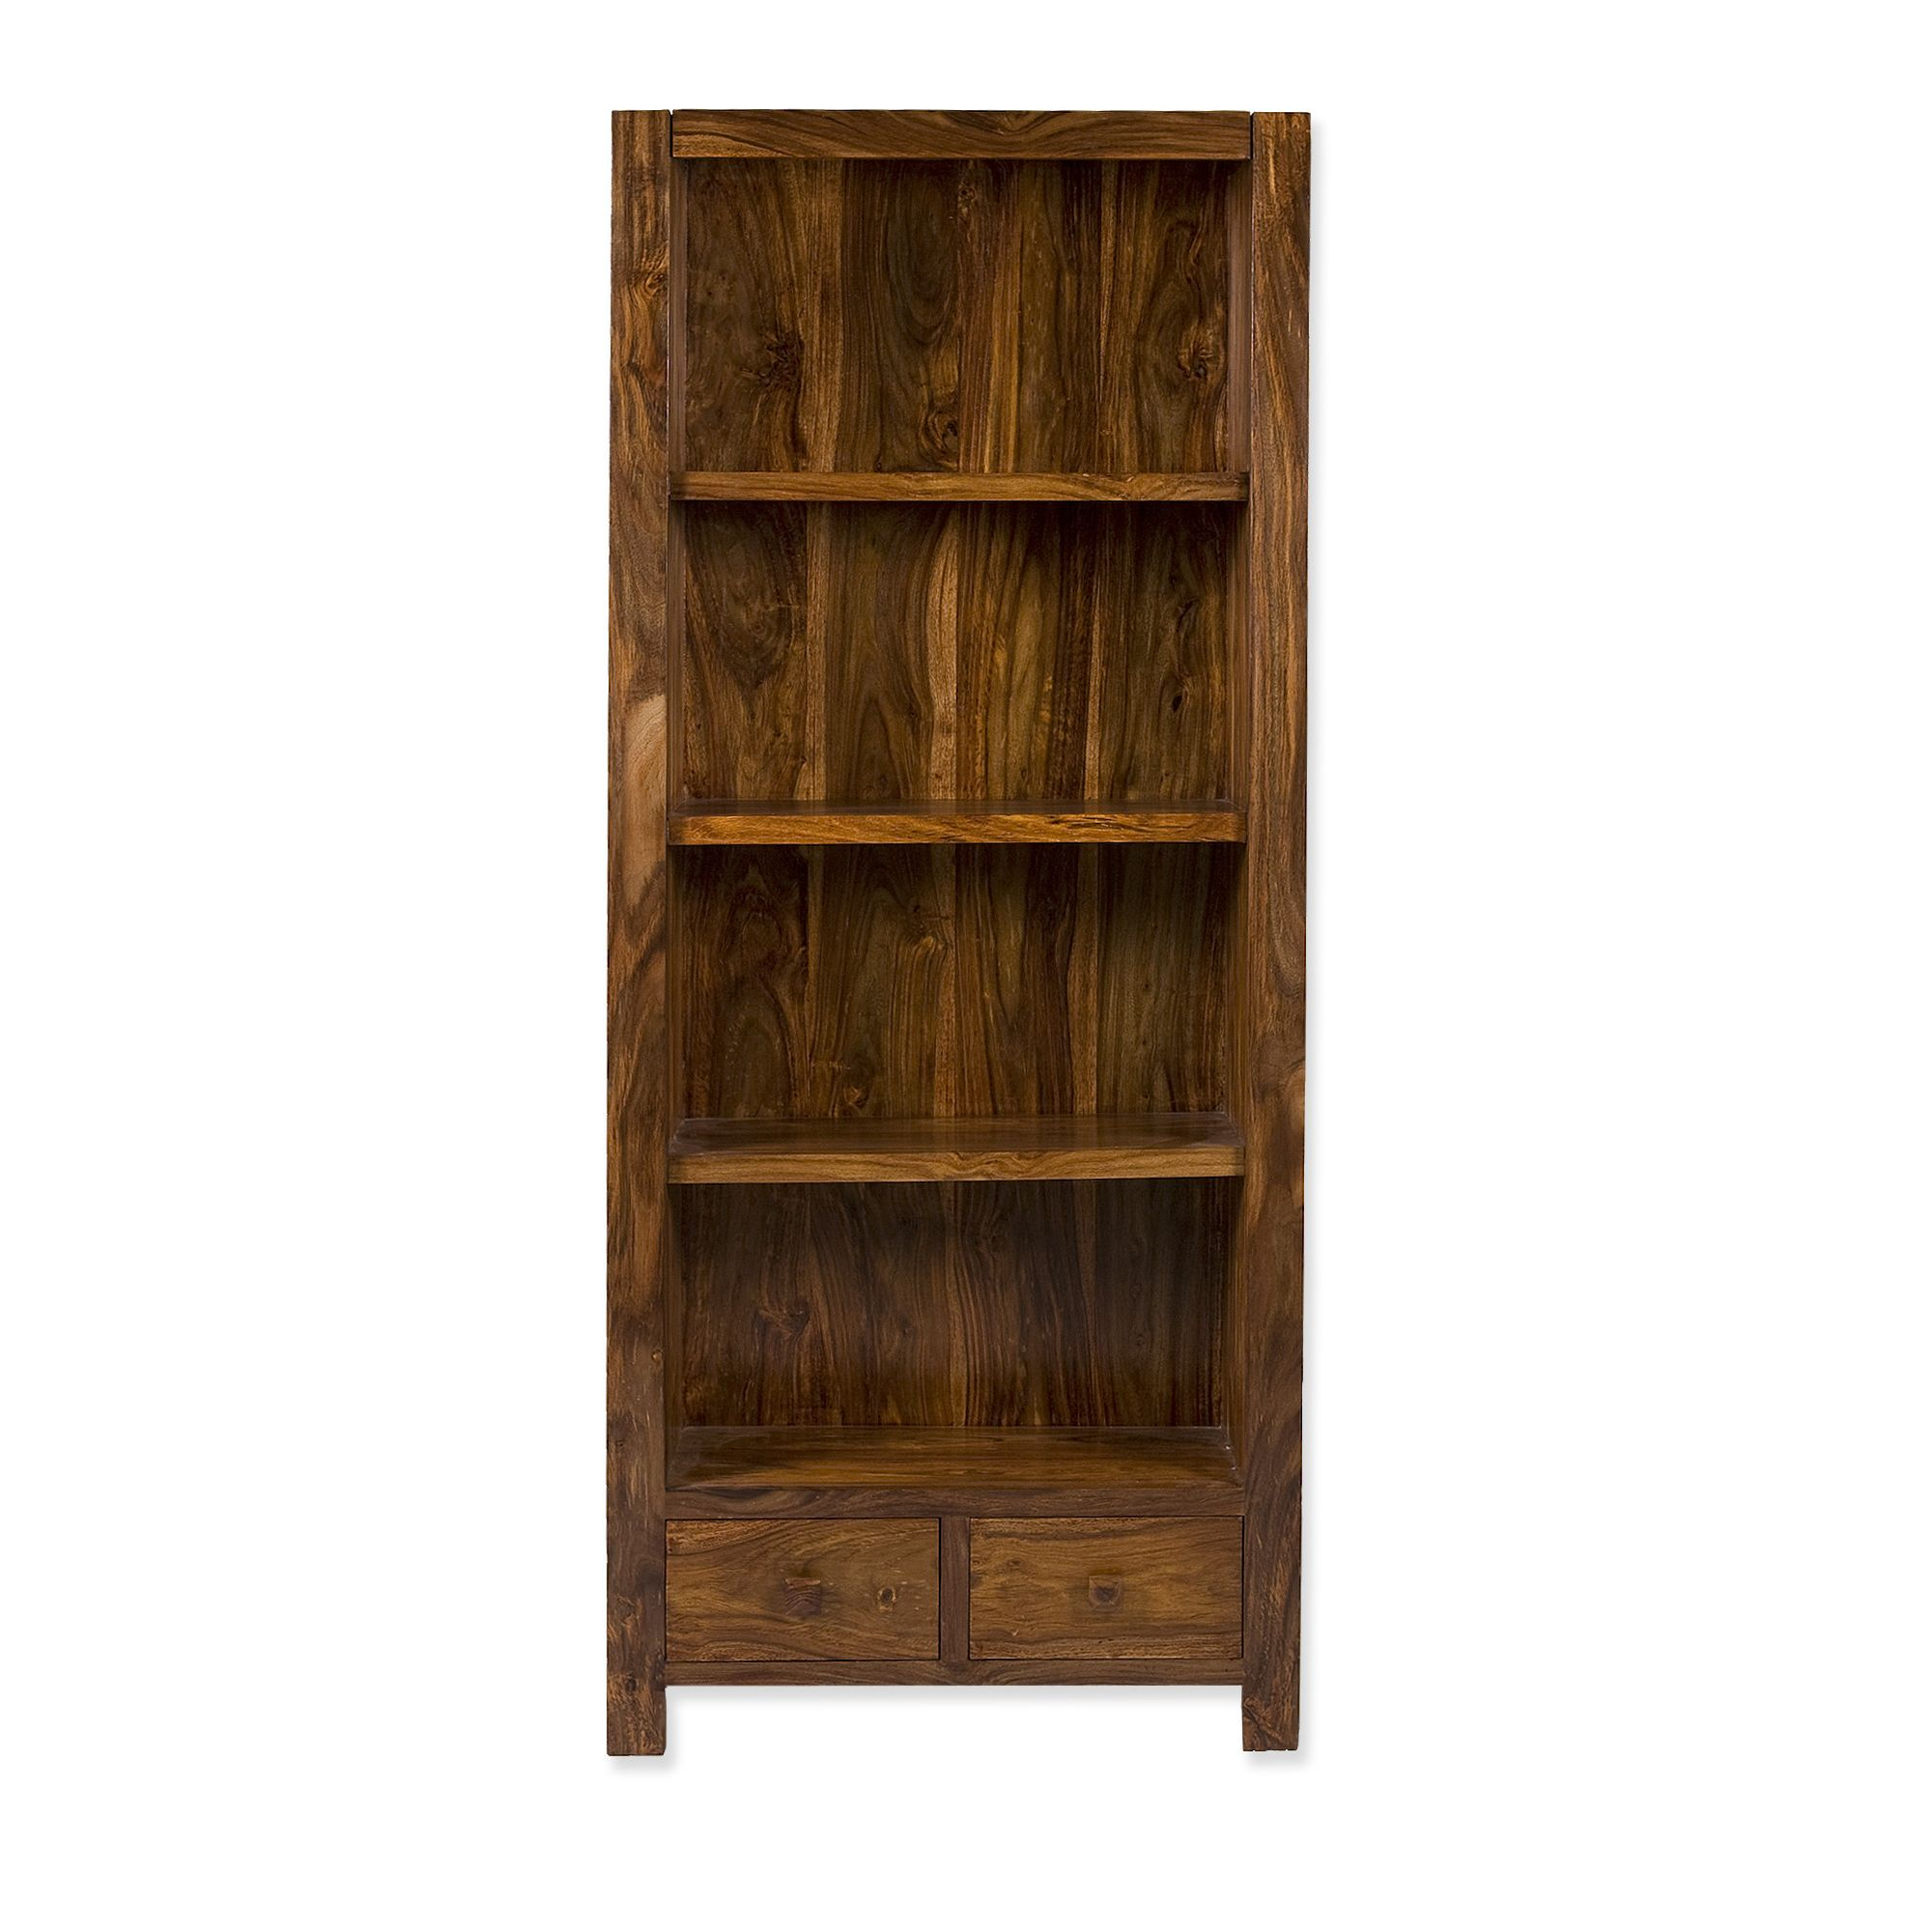 Elements Block Bookcase in Warm Lacquer at Tesco Direct